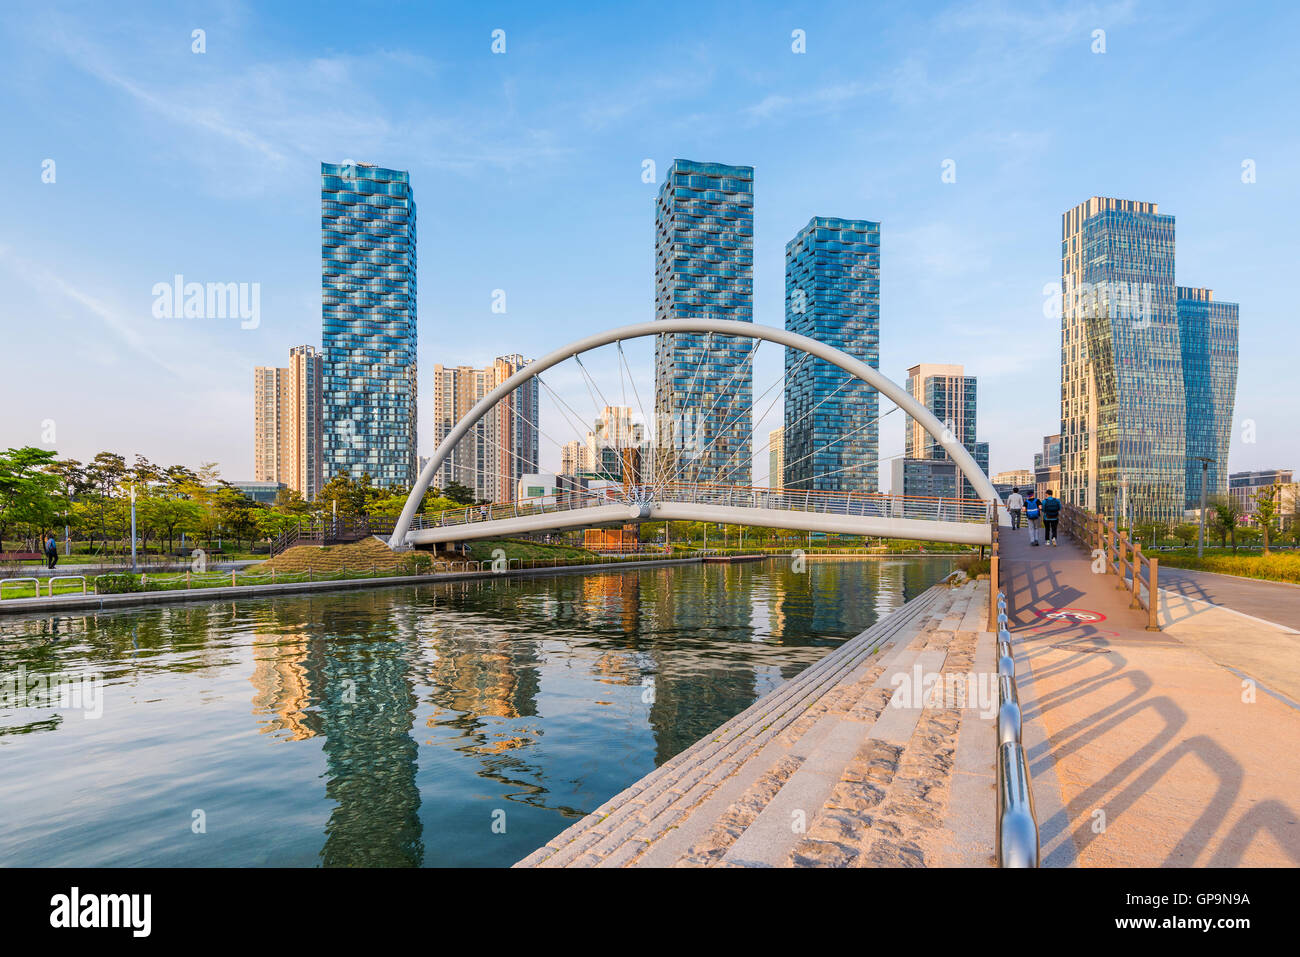 Incheon,Central Park in Songdo International Business District , South Korea. - Stock Image